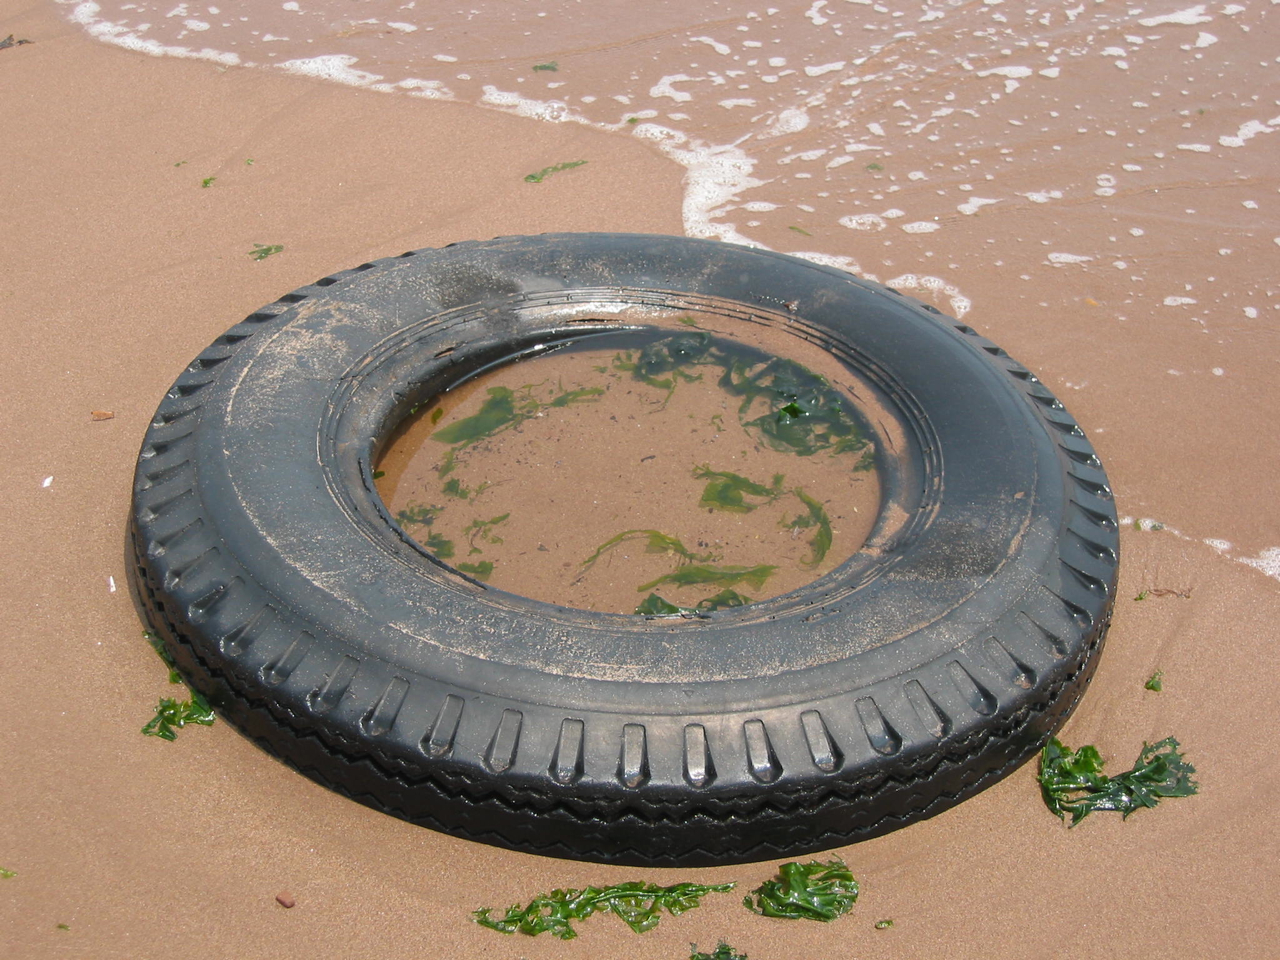 Tire, 11:54am, July 4, 2004. Oakwood Beach, Staten Island.